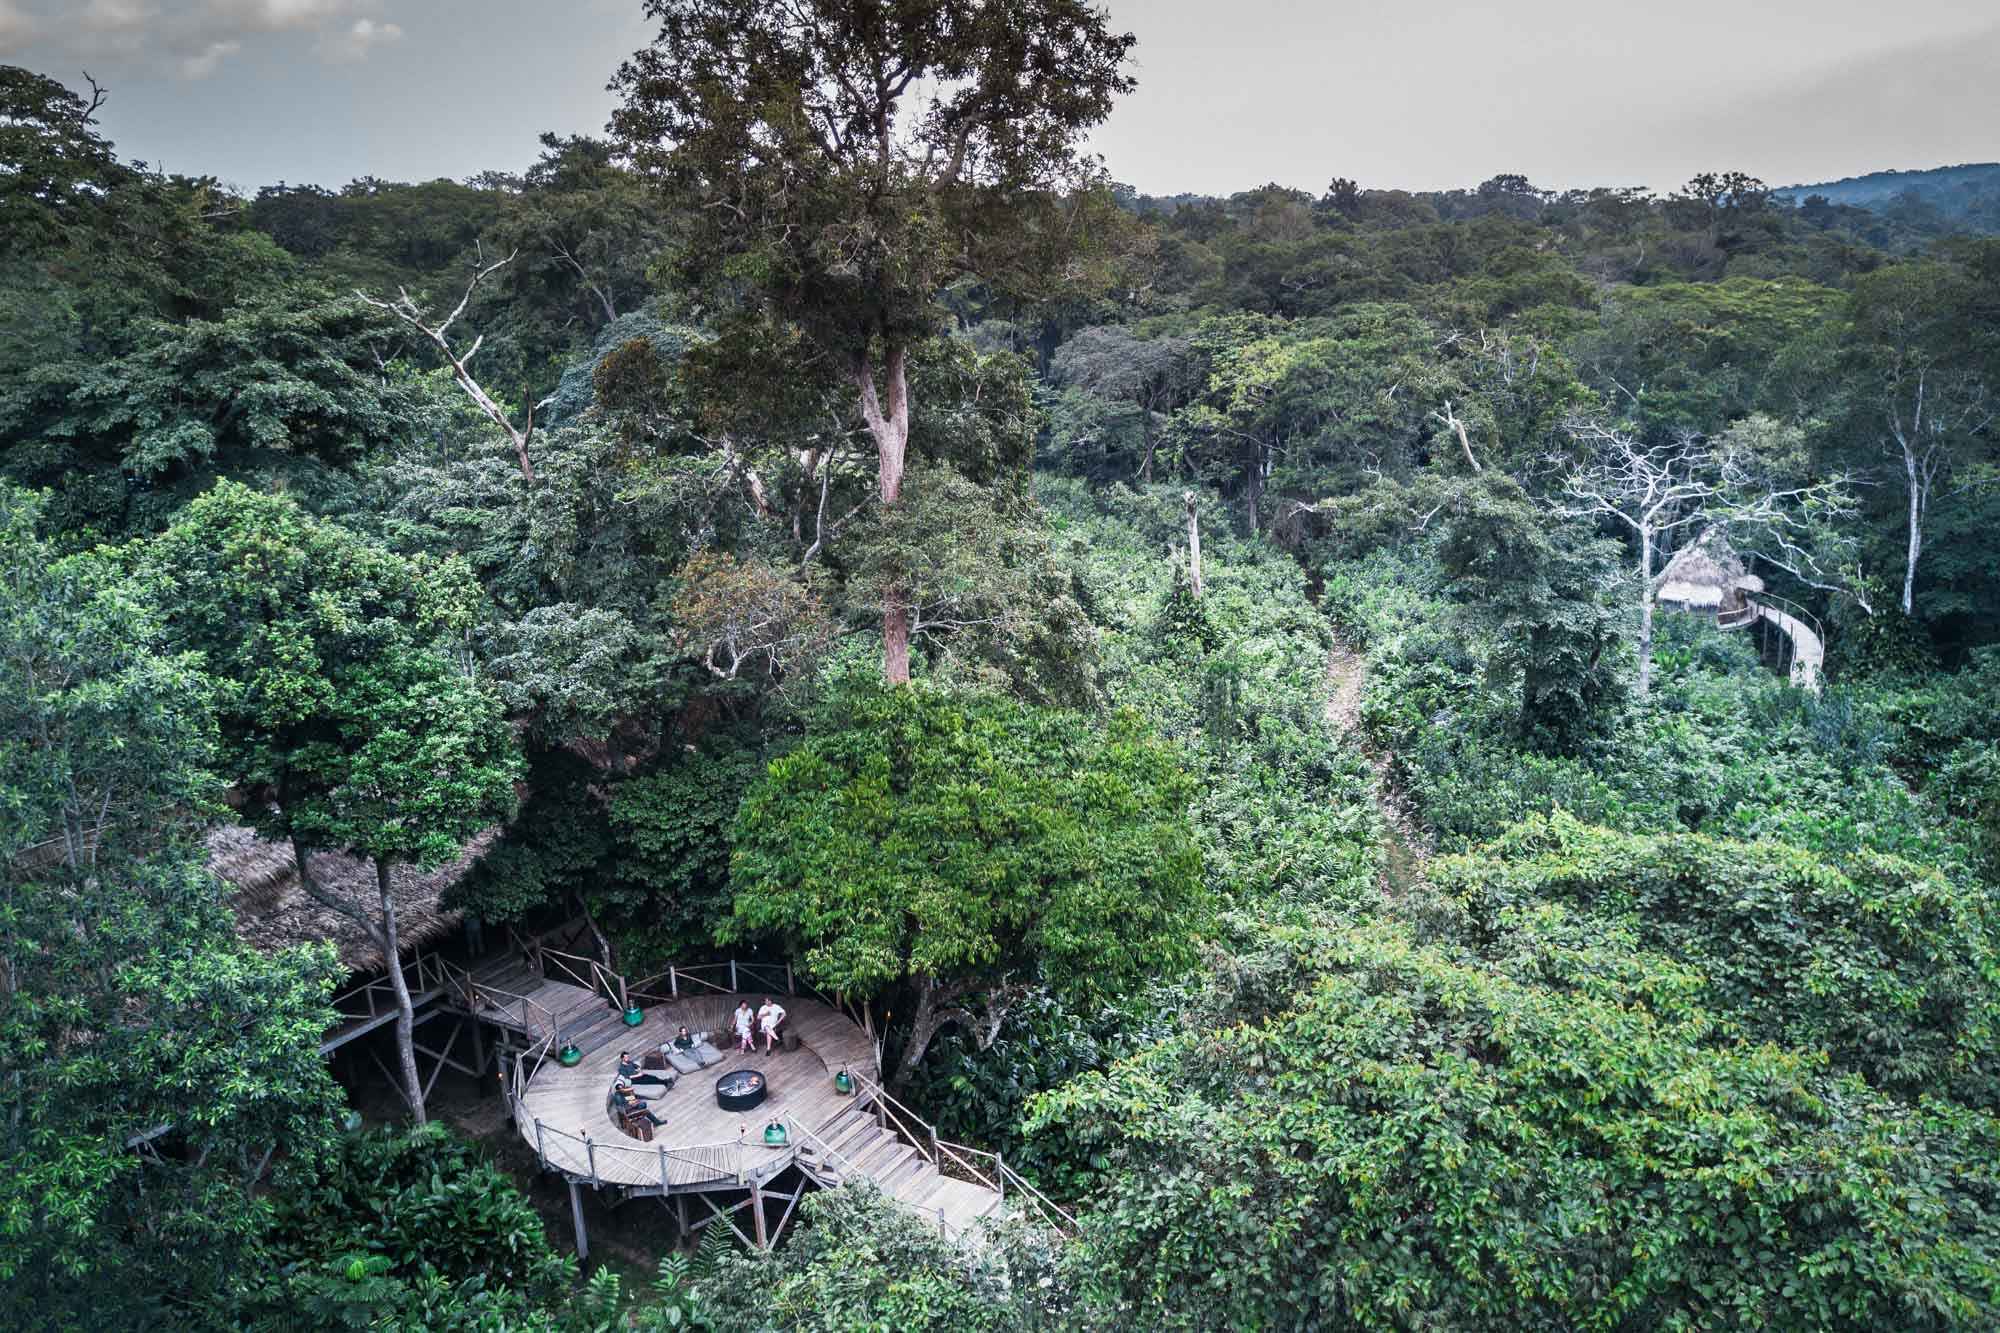 Ngaga Camp in Odzala-Kokoua National Park, an excellent base from which to see lowland gorillas.